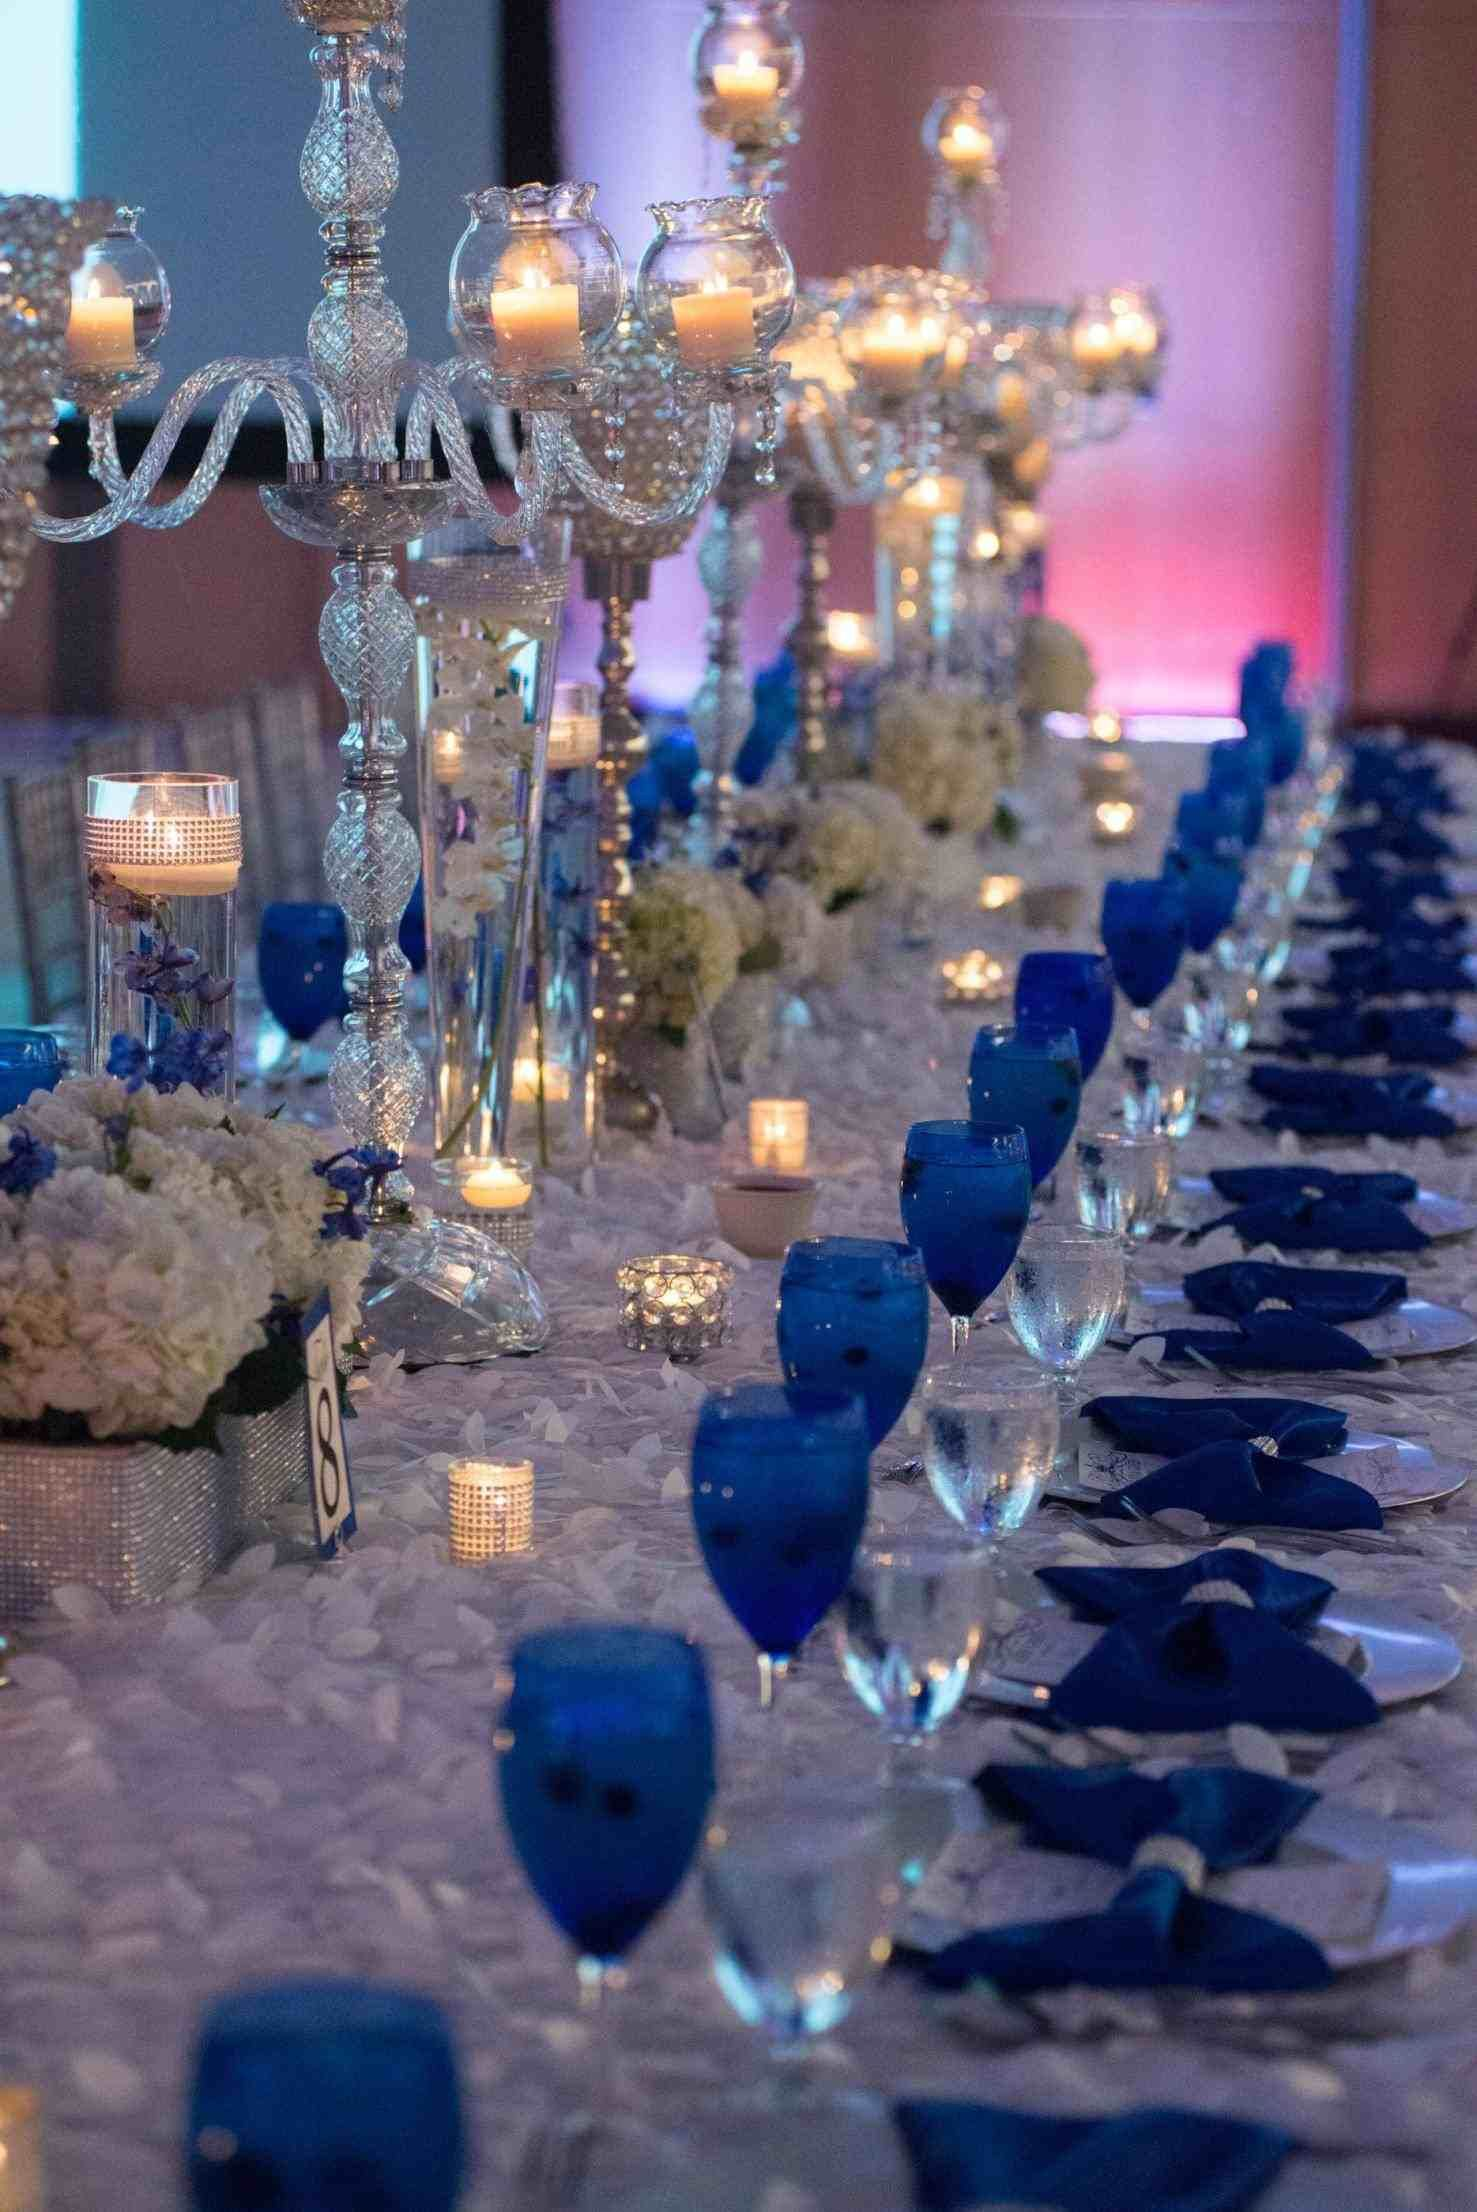 Wedding decorations with royal blue  royal blue and silver wedding decorations  casamiento